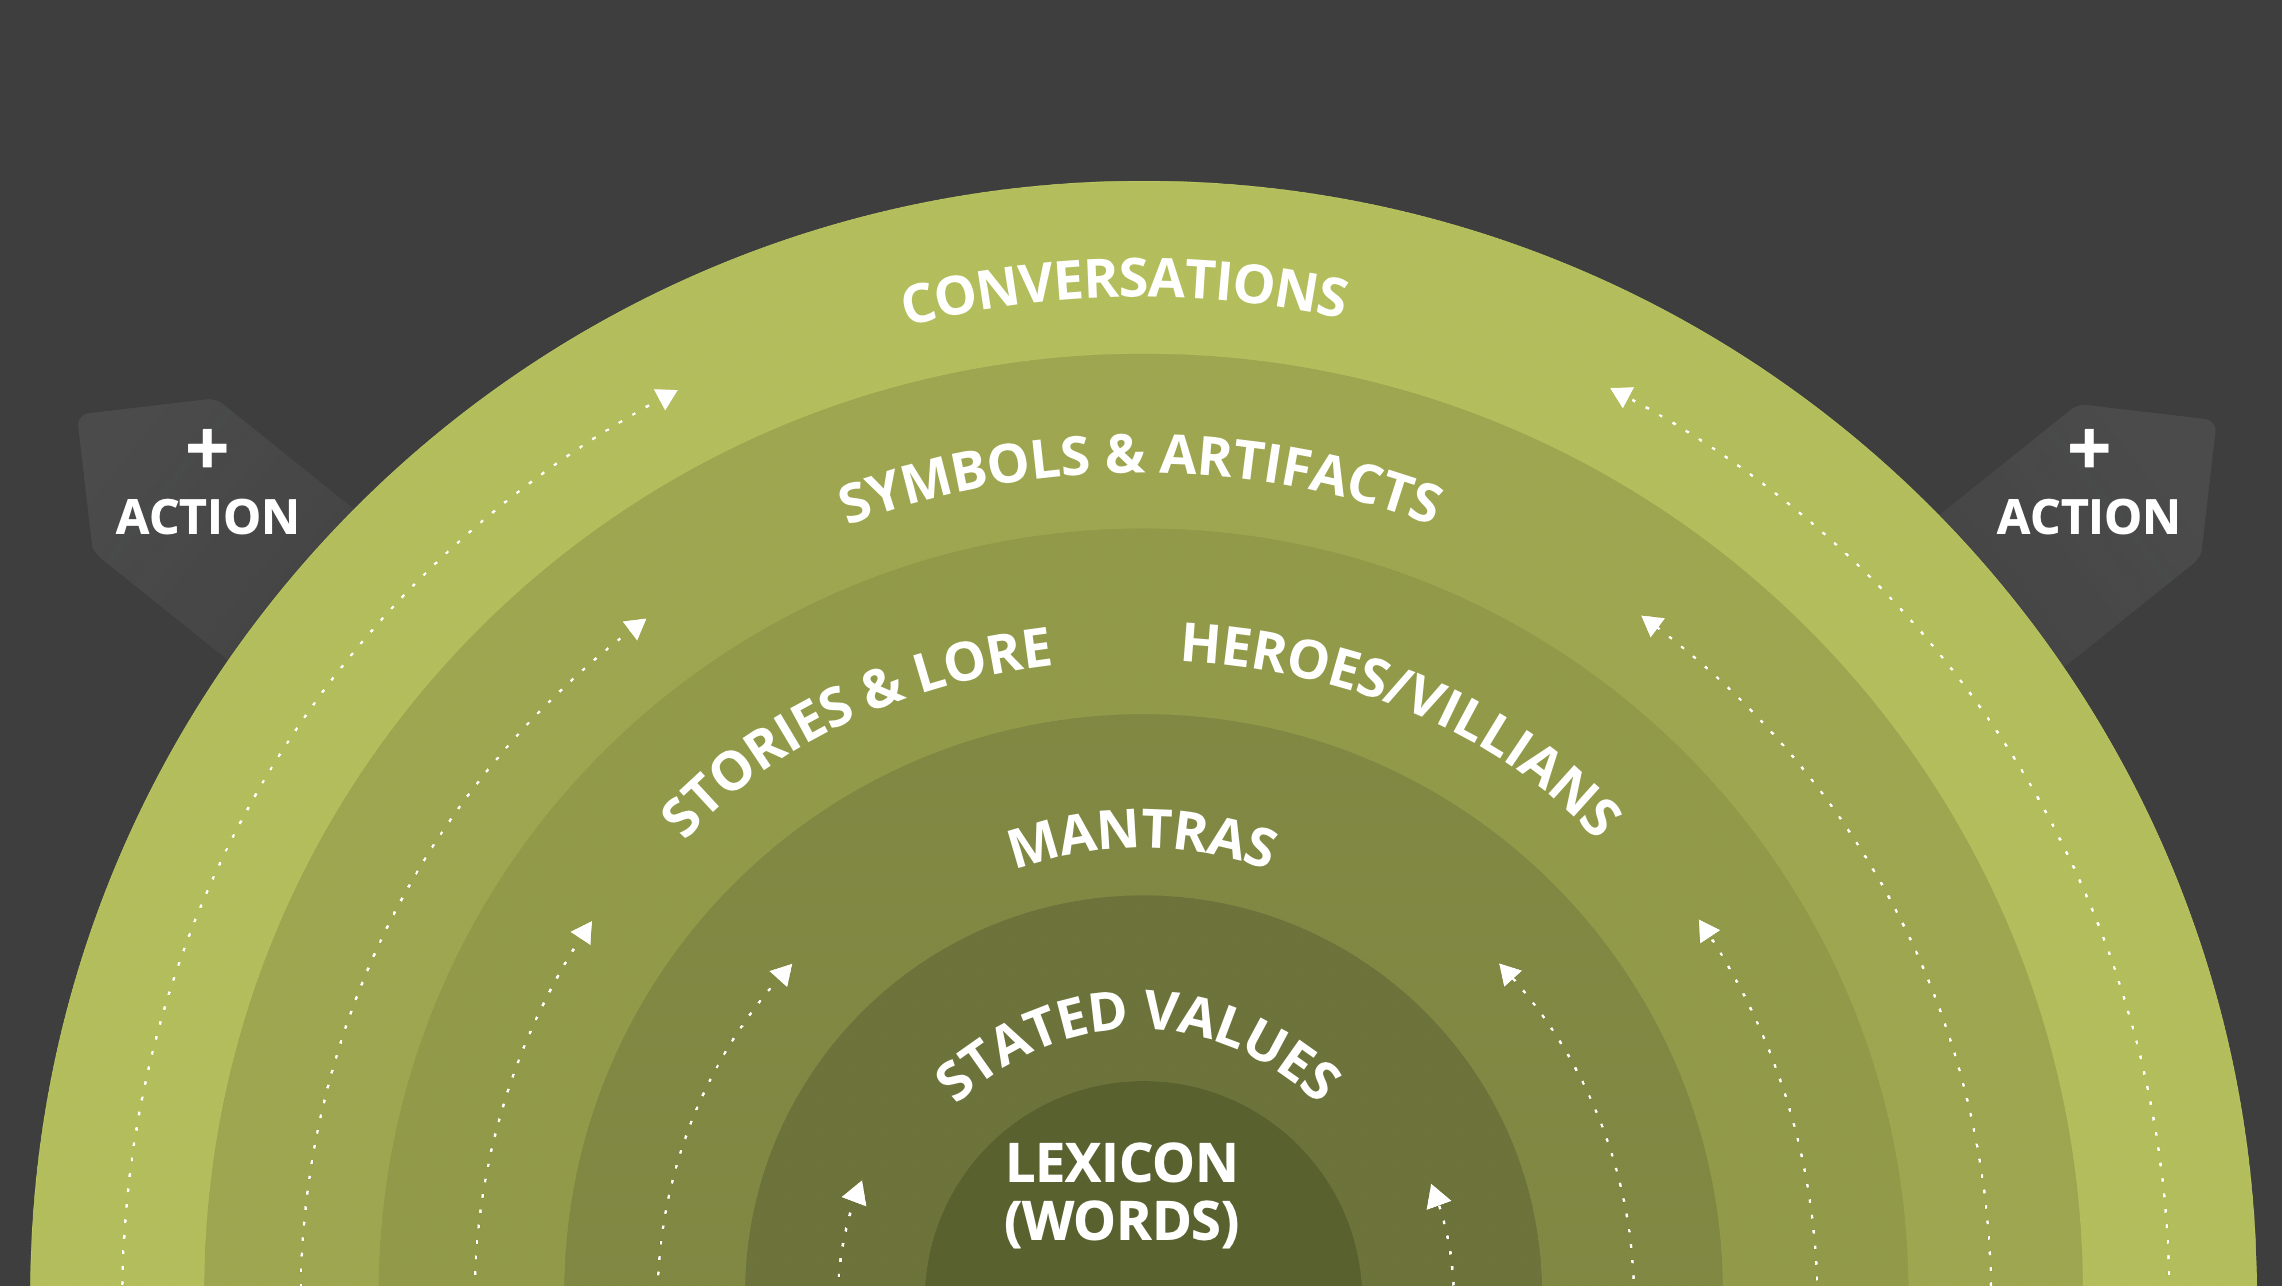 Lexicon > Stated Values > Mantras > Stories and Lore > Symbols and Art > Conversations > Action in a Rainbow